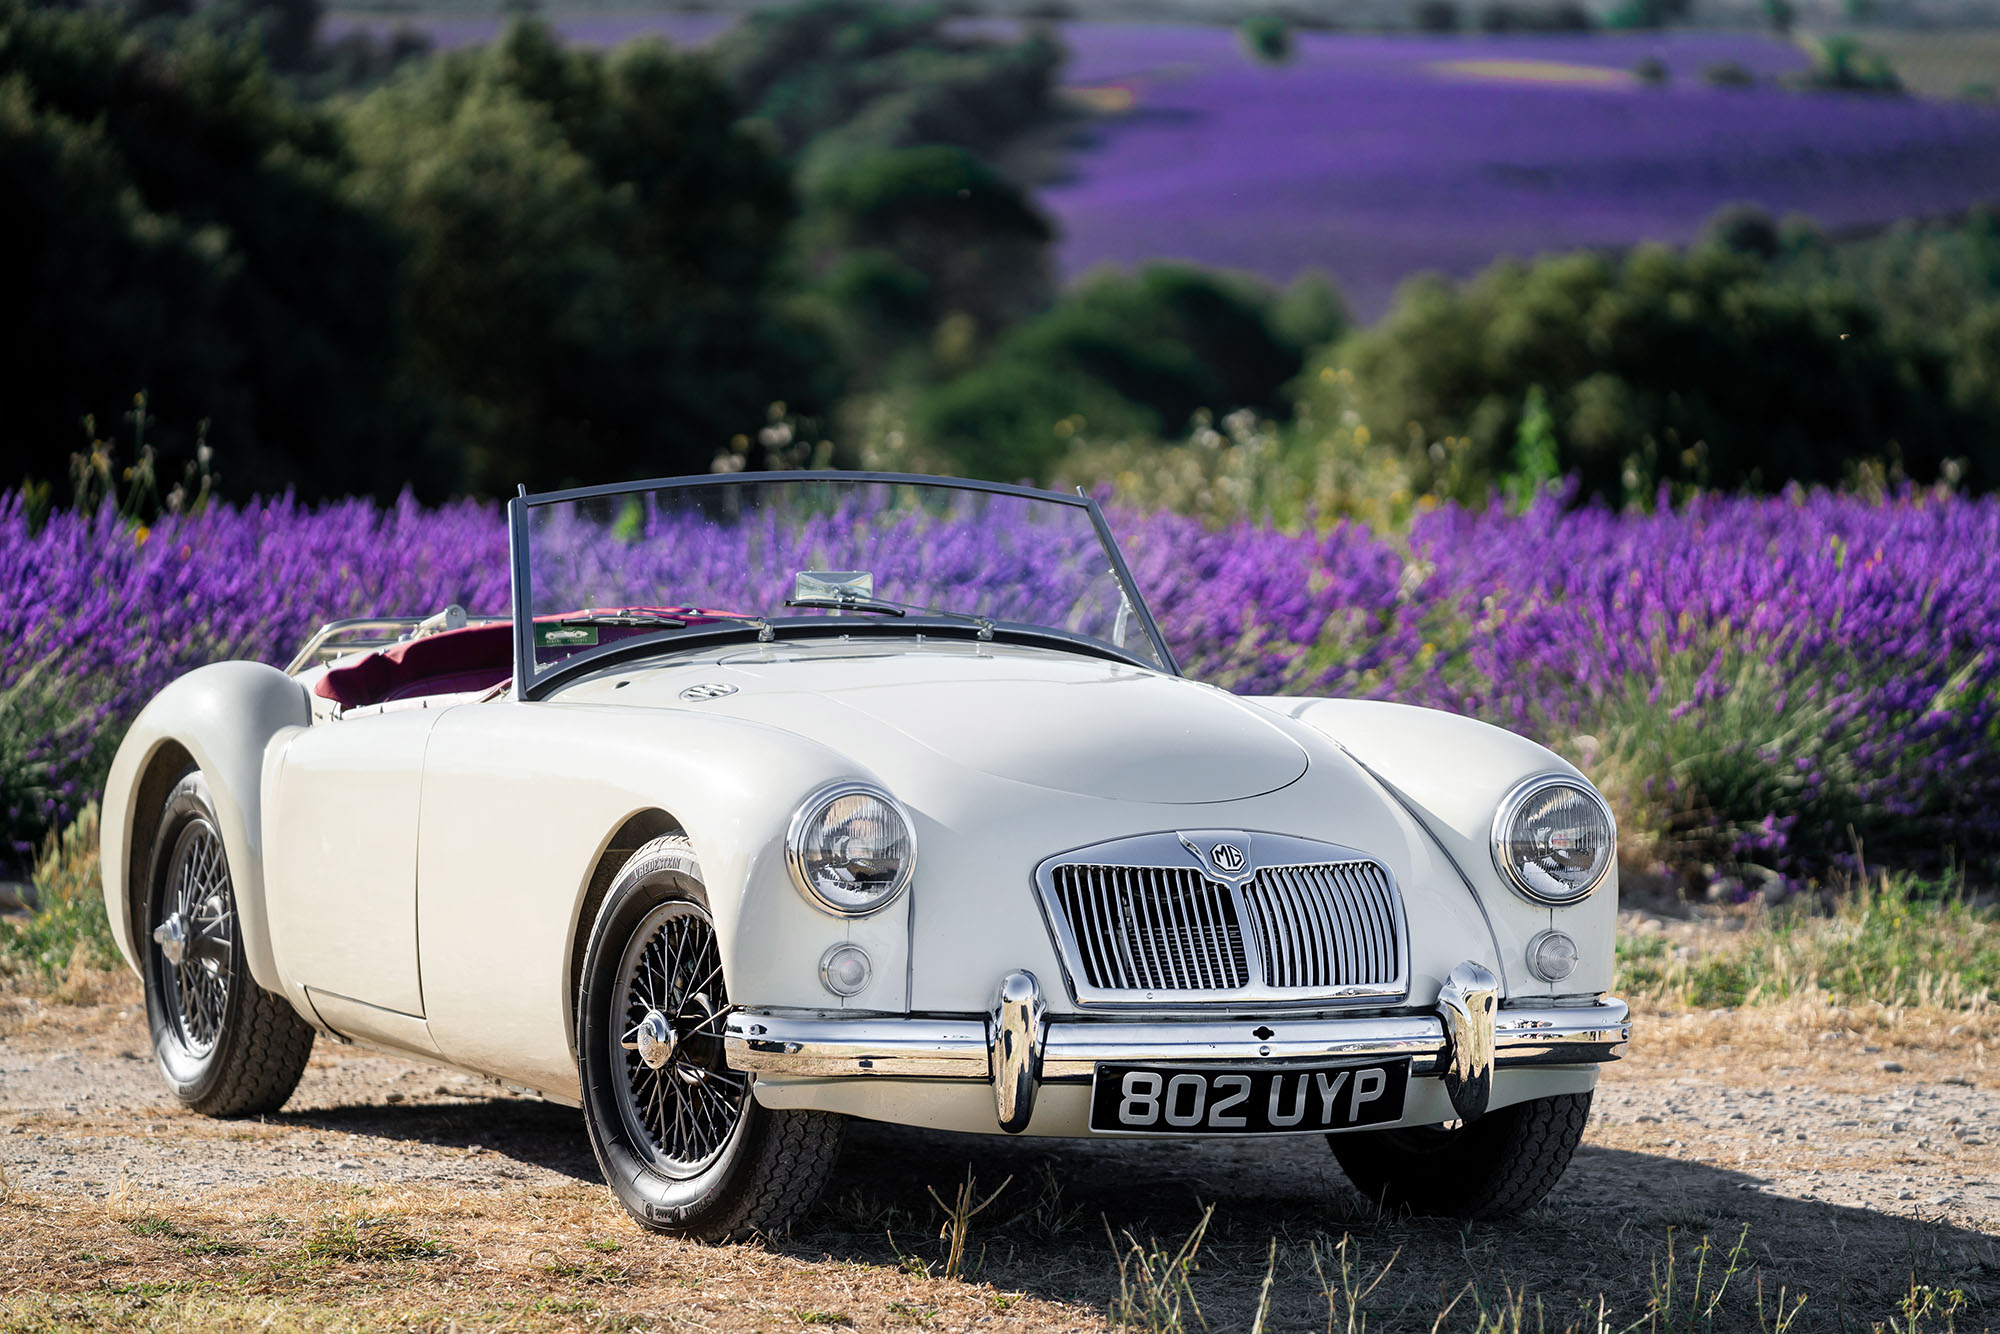 A front view of the Provence Classics 1958 MGA in the countryside of Provence, France.